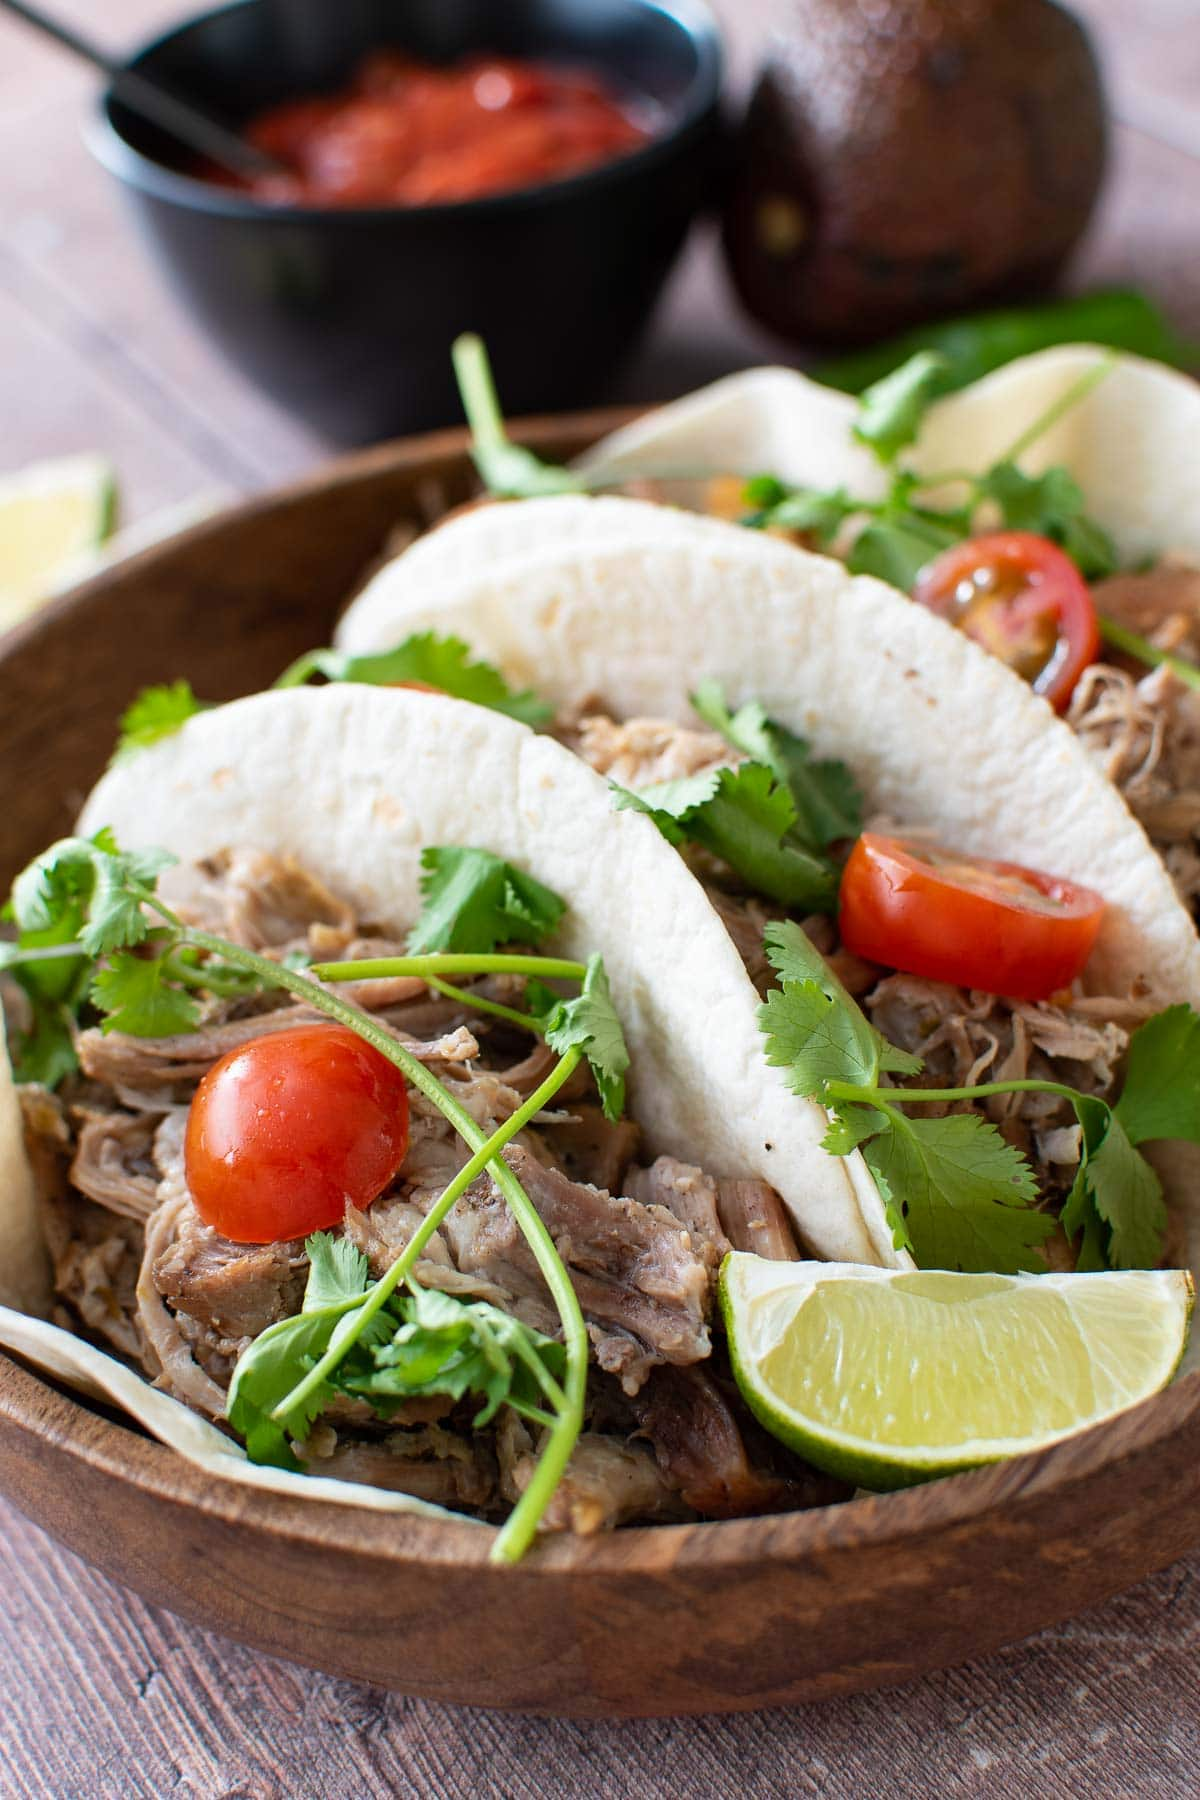 Instant pot pulled pork tacos with tomatoes, lime and cilantro.